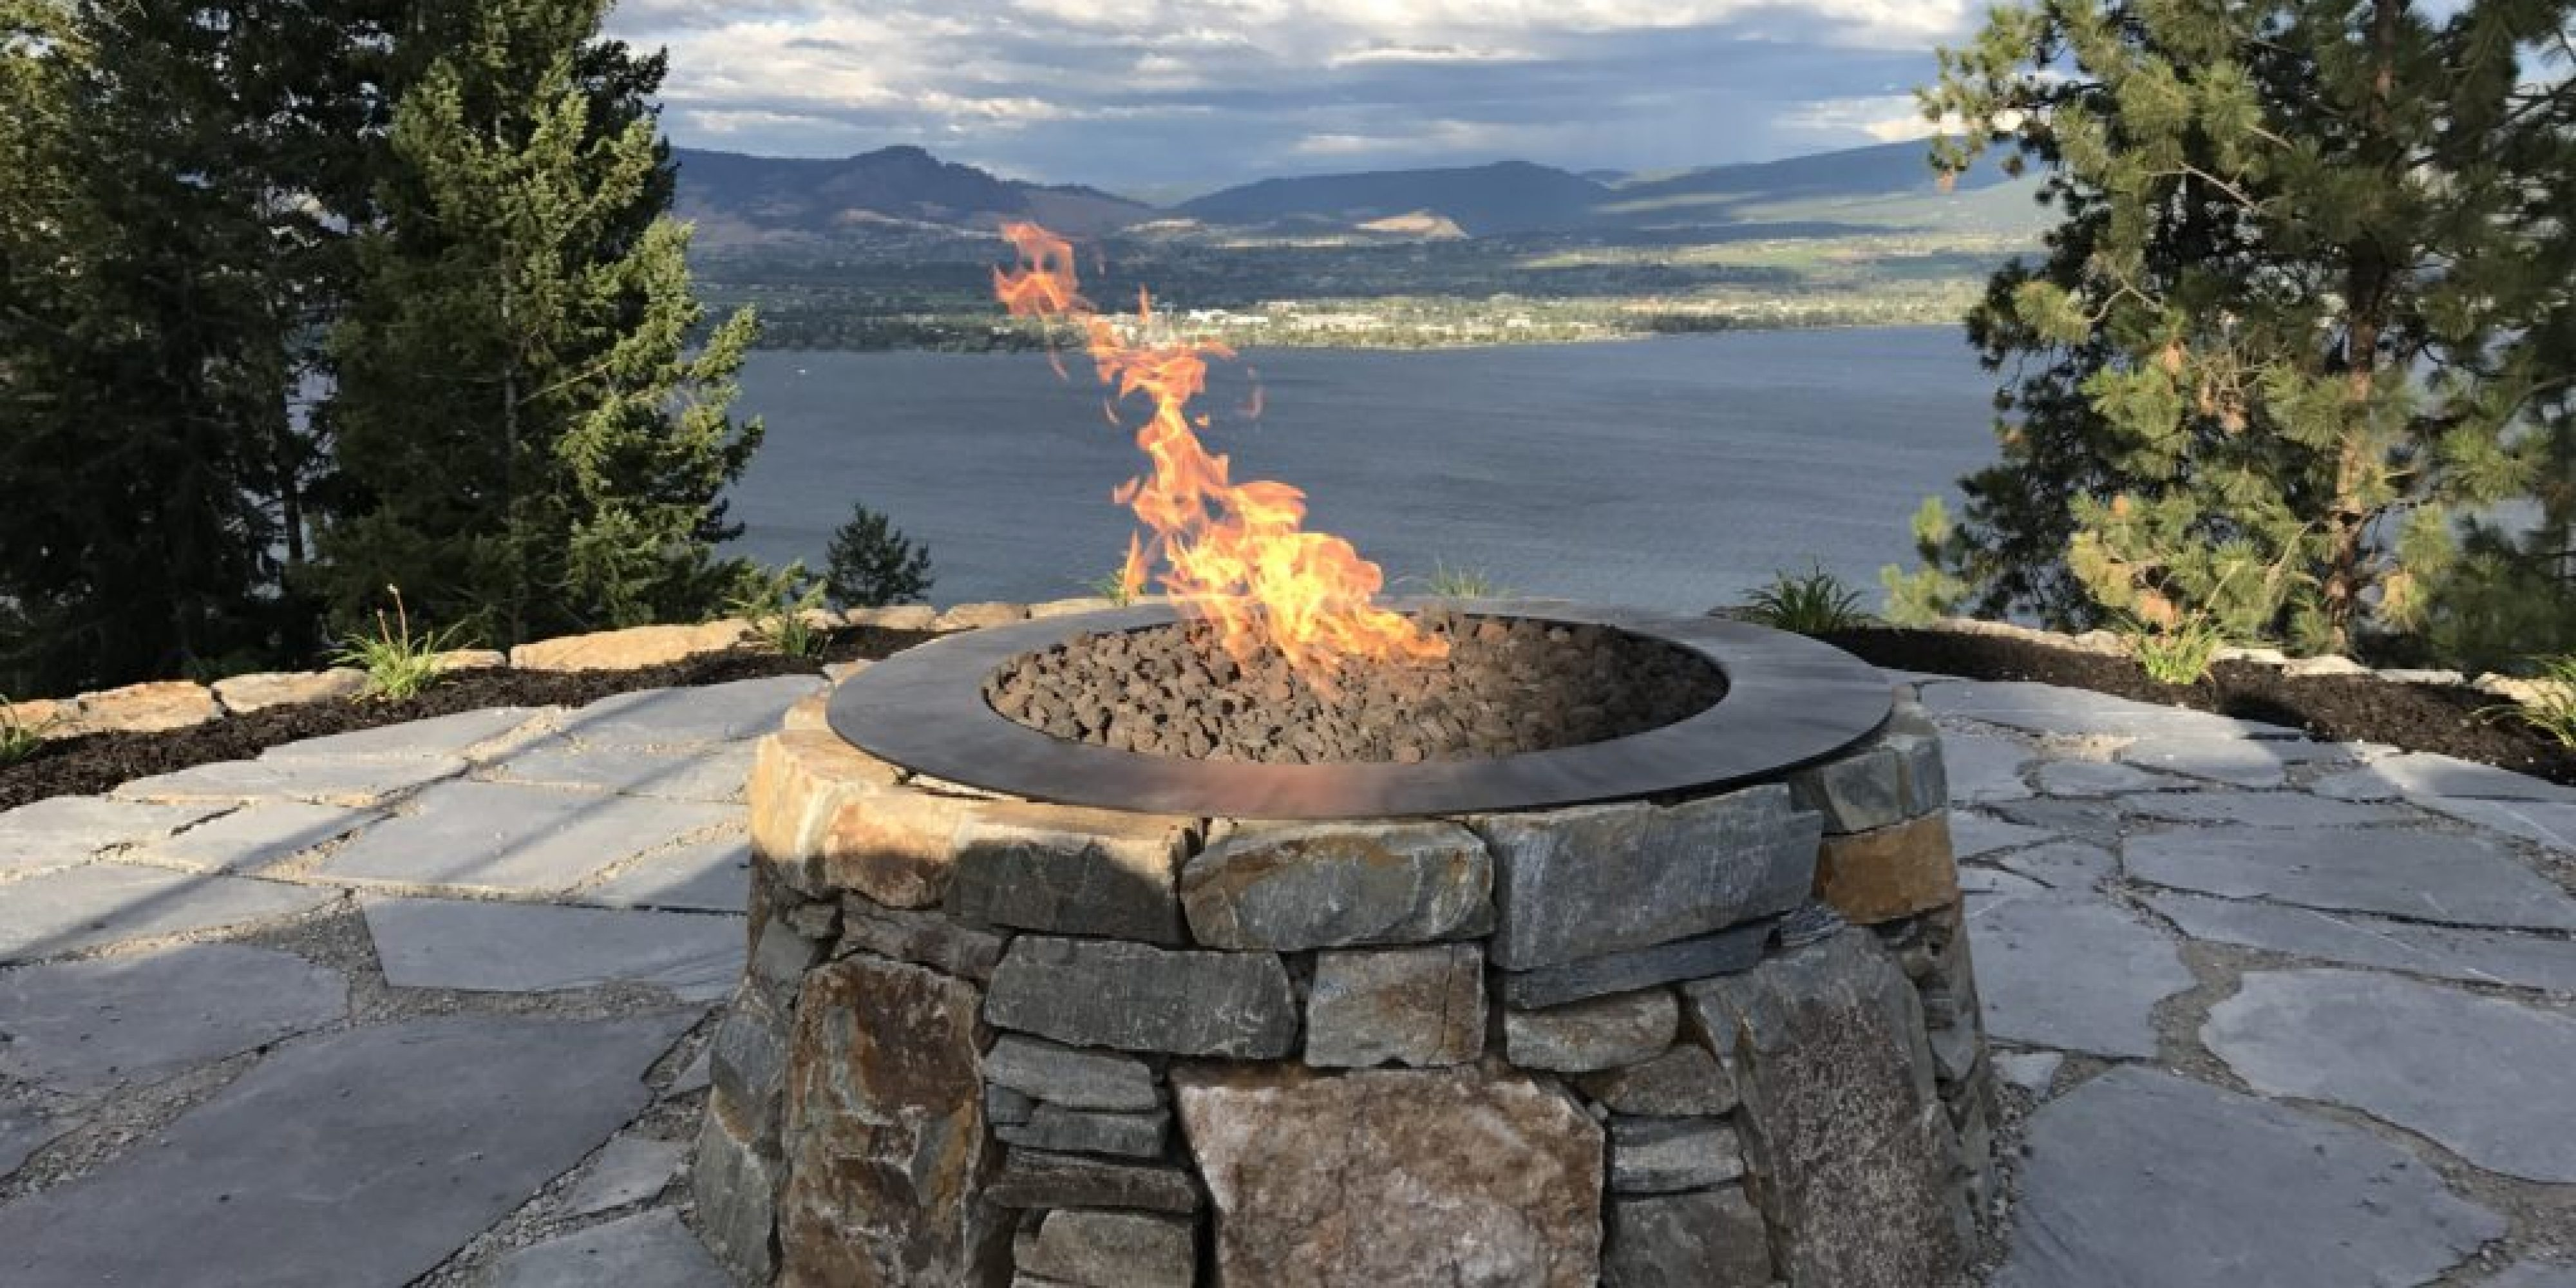 fire pit overlooking a lake